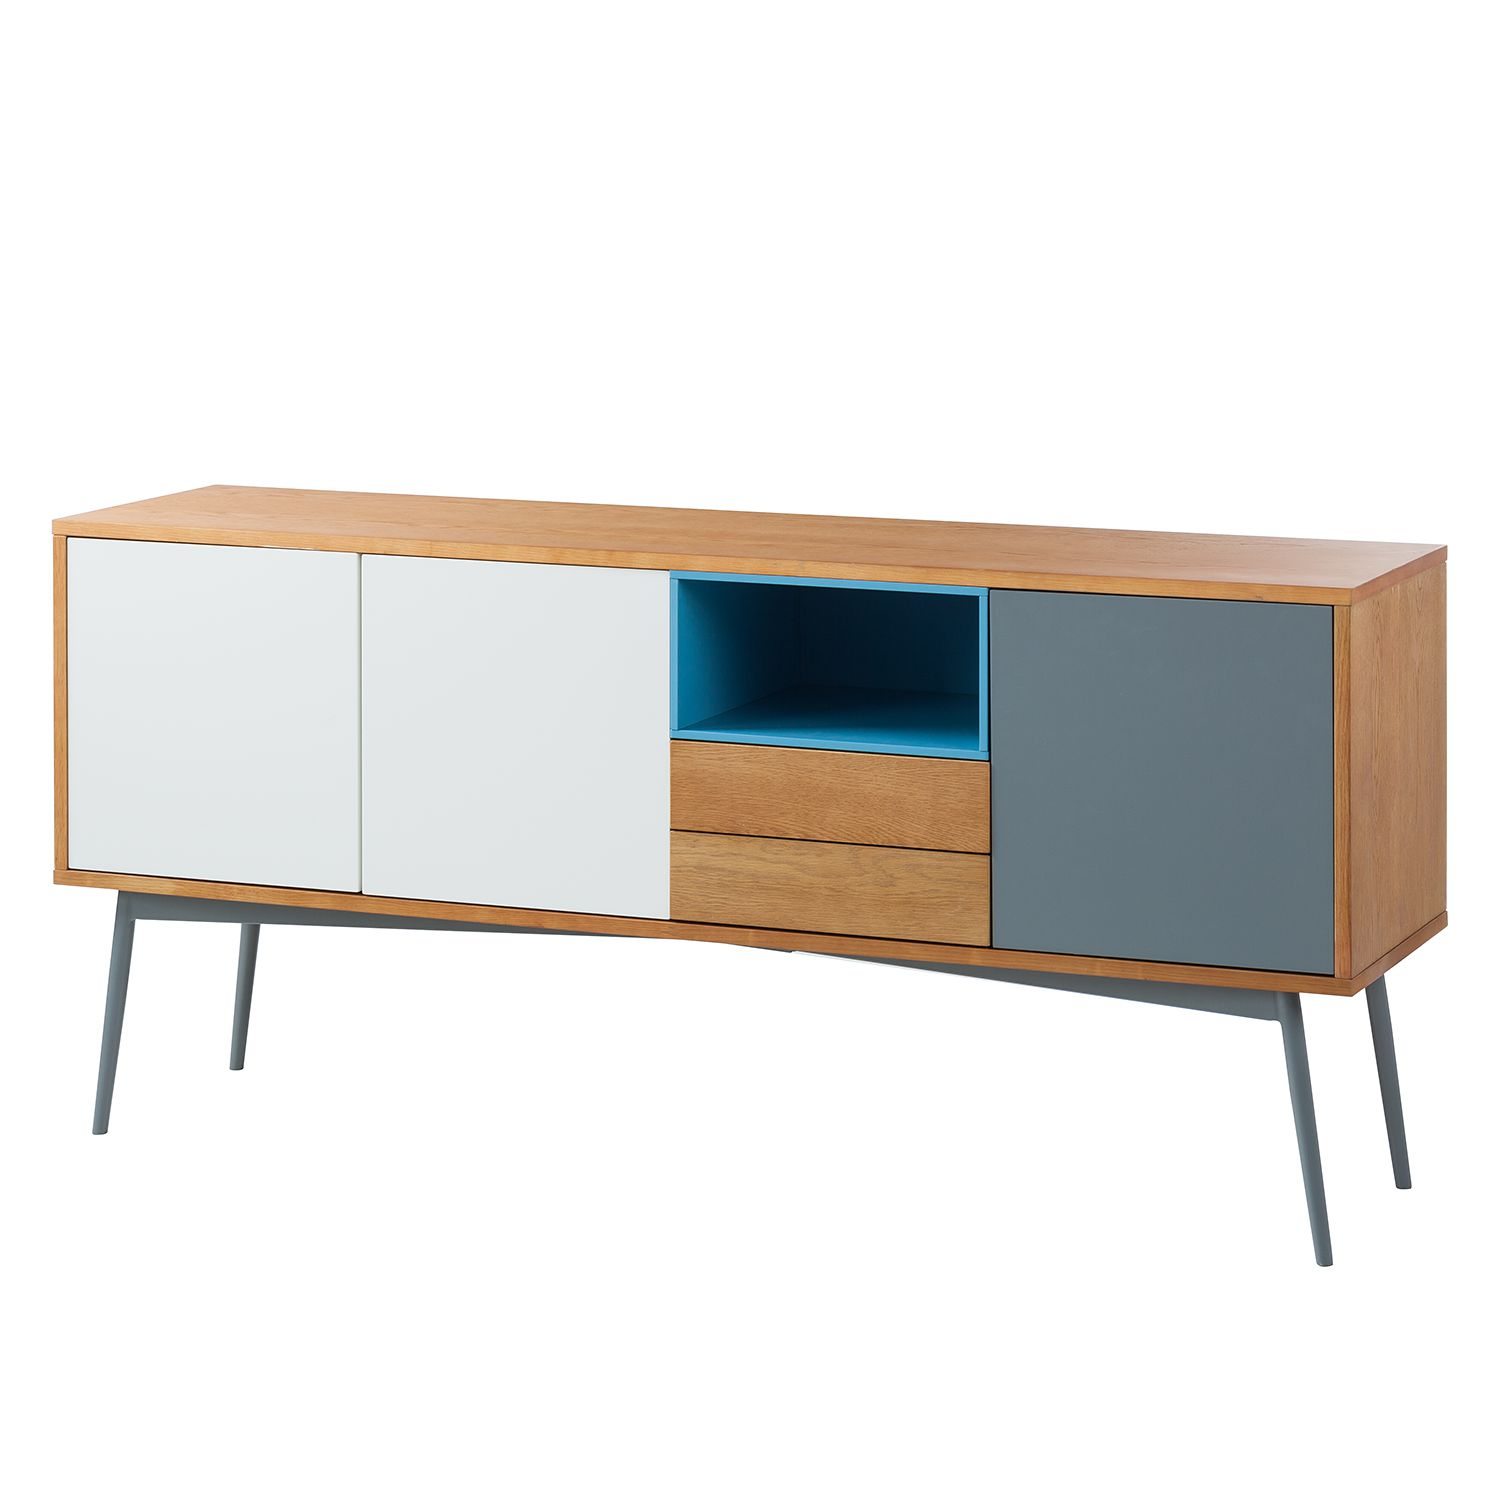 12 sparen sideboard eno iii von morteens 349 99 cherry m bel home24. Black Bedroom Furniture Sets. Home Design Ideas